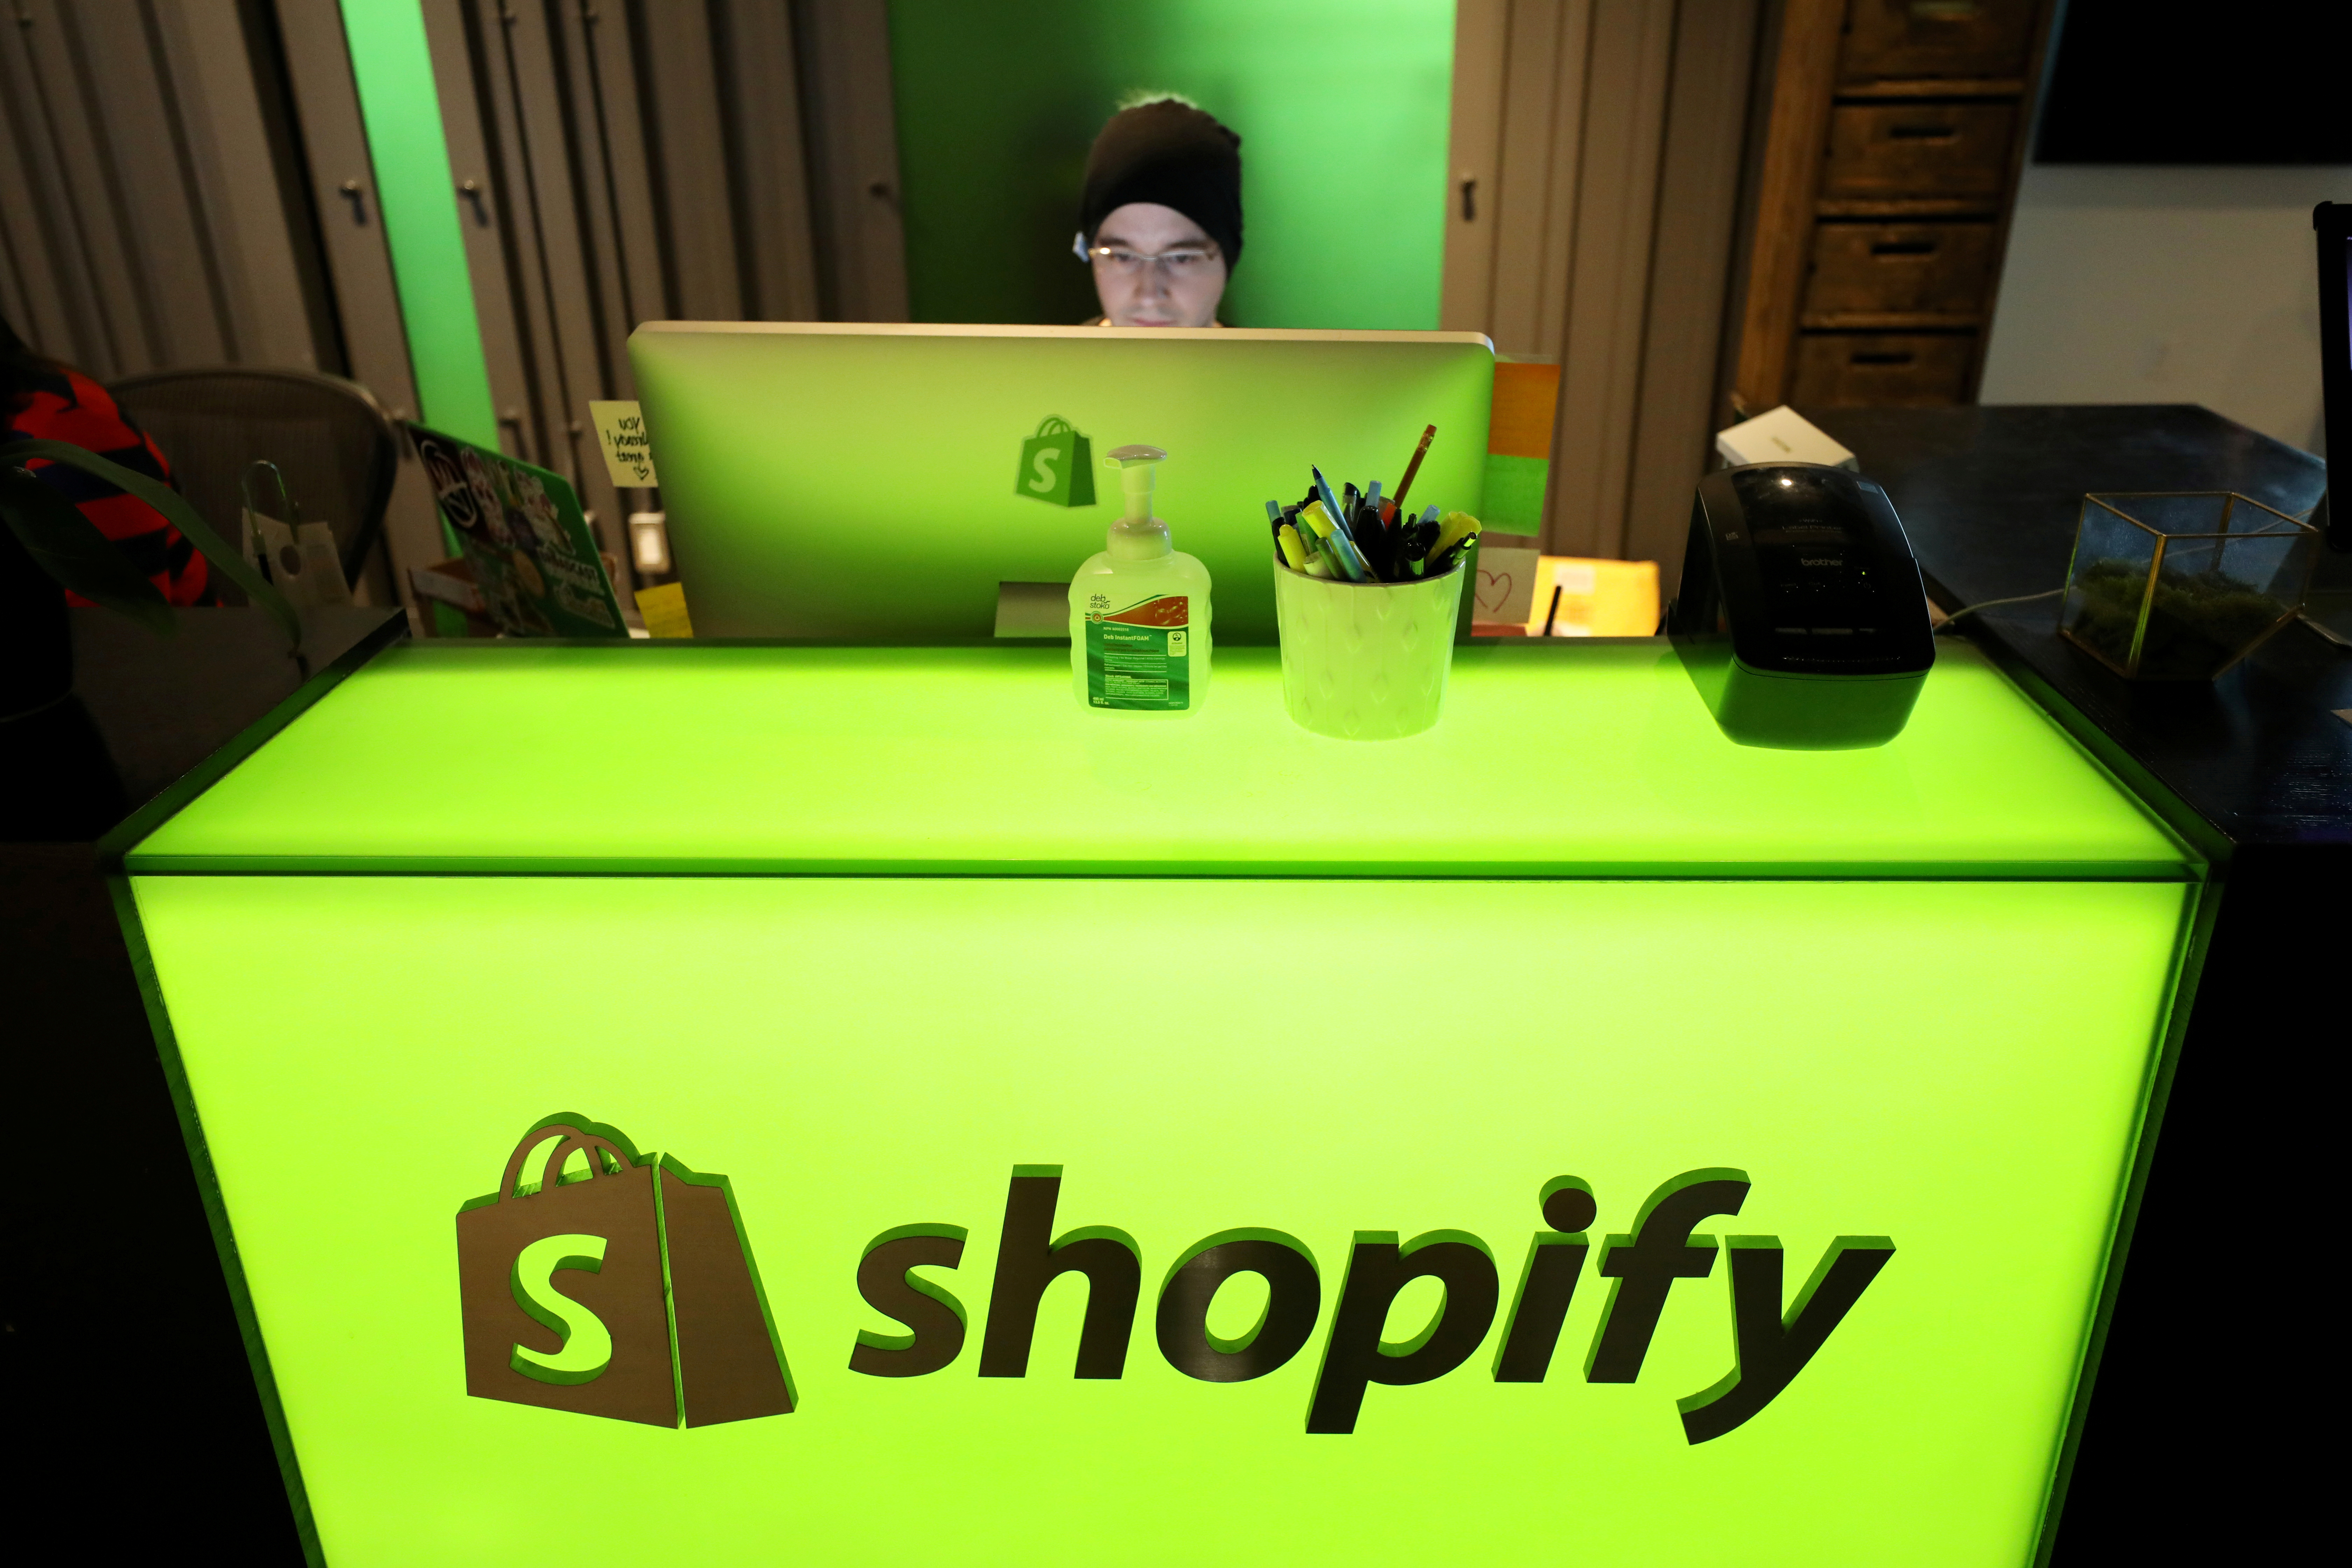 An employee works at Shopify's headquarters in Ottawa, Ontario, Canada, October 22, 2018. REUTERS/Chris Wattie